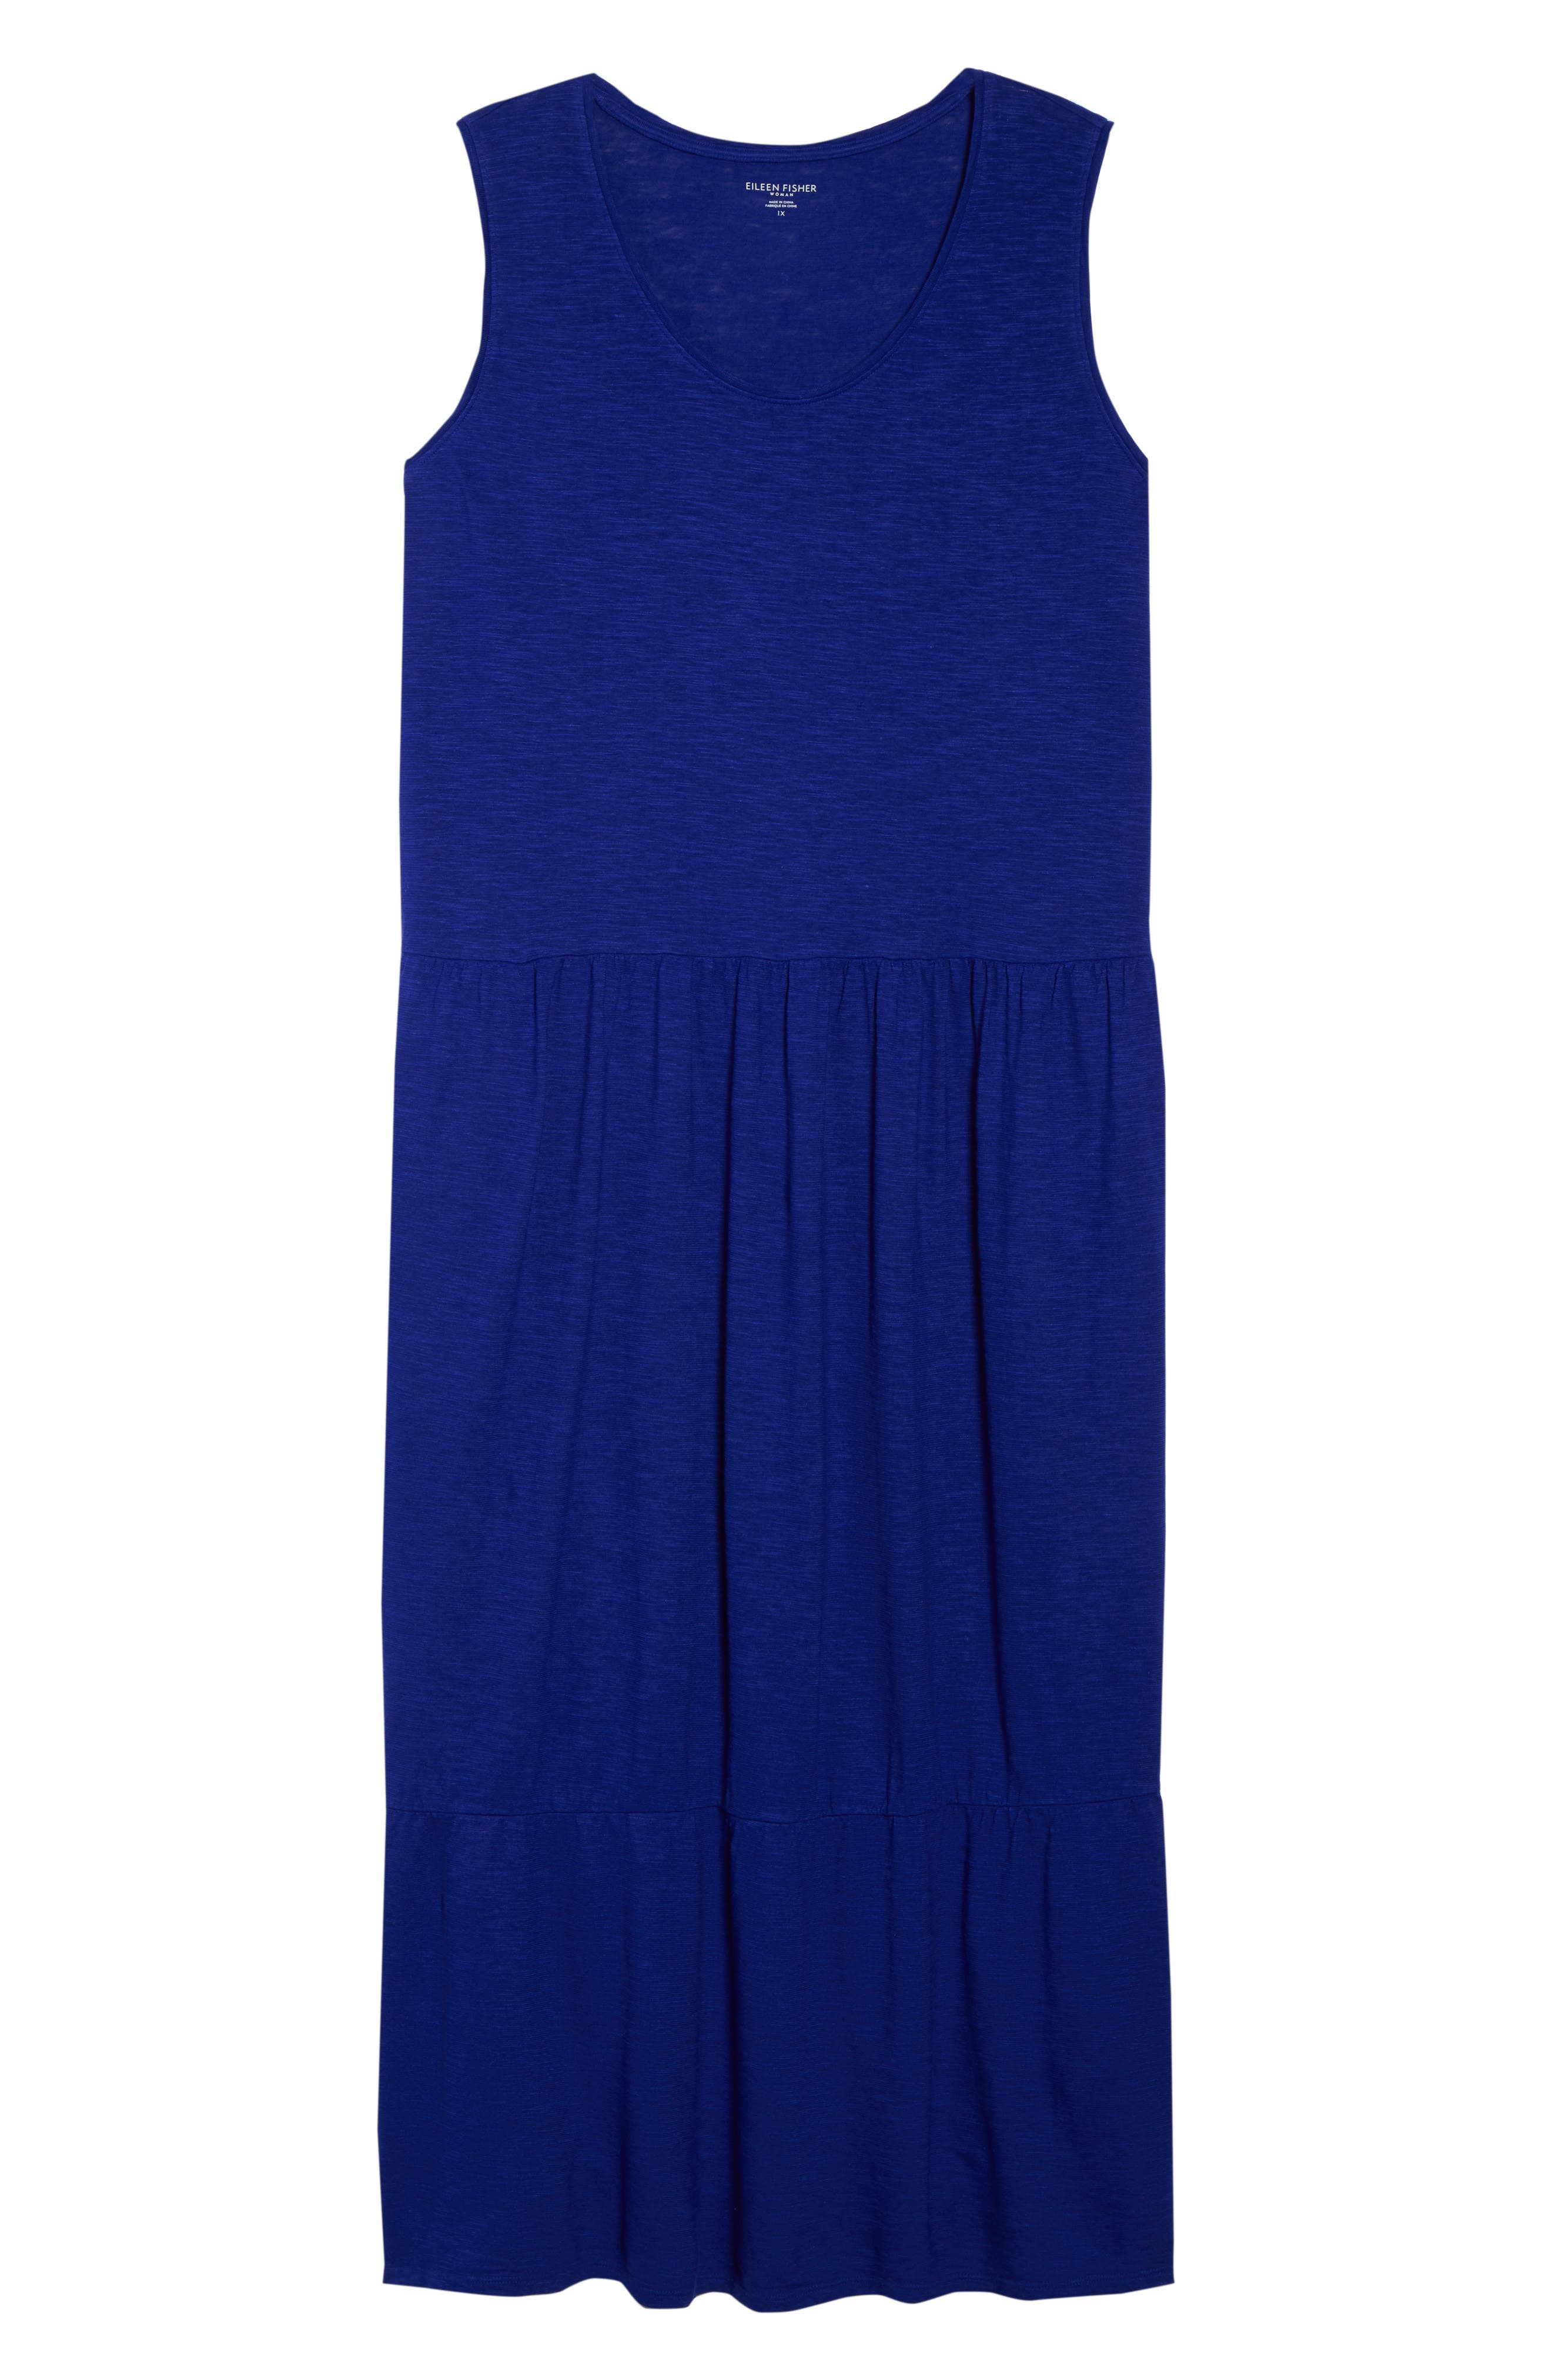 Scooped Neck Hemp & Cotton Midi Dress,                             Alternate thumbnail 7, color,                             BLUE VIOLET